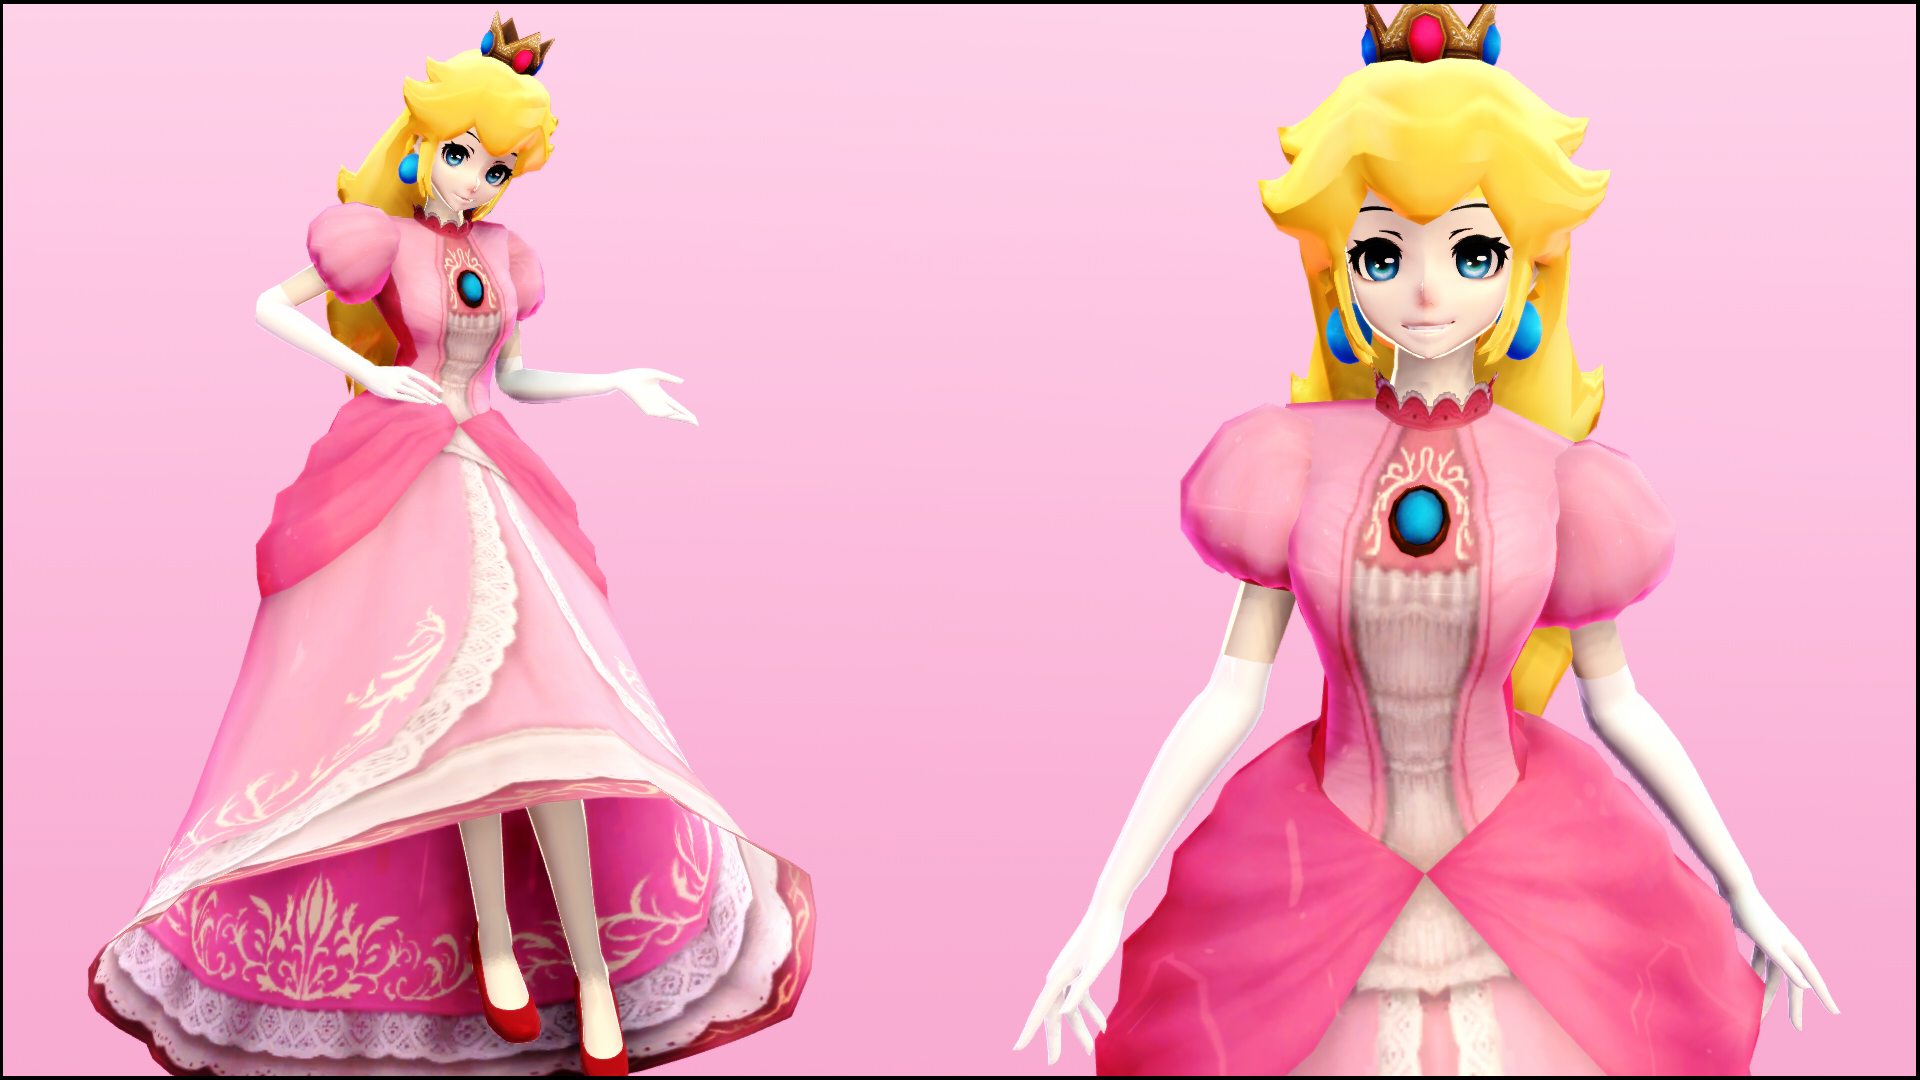 Mmd peach model download